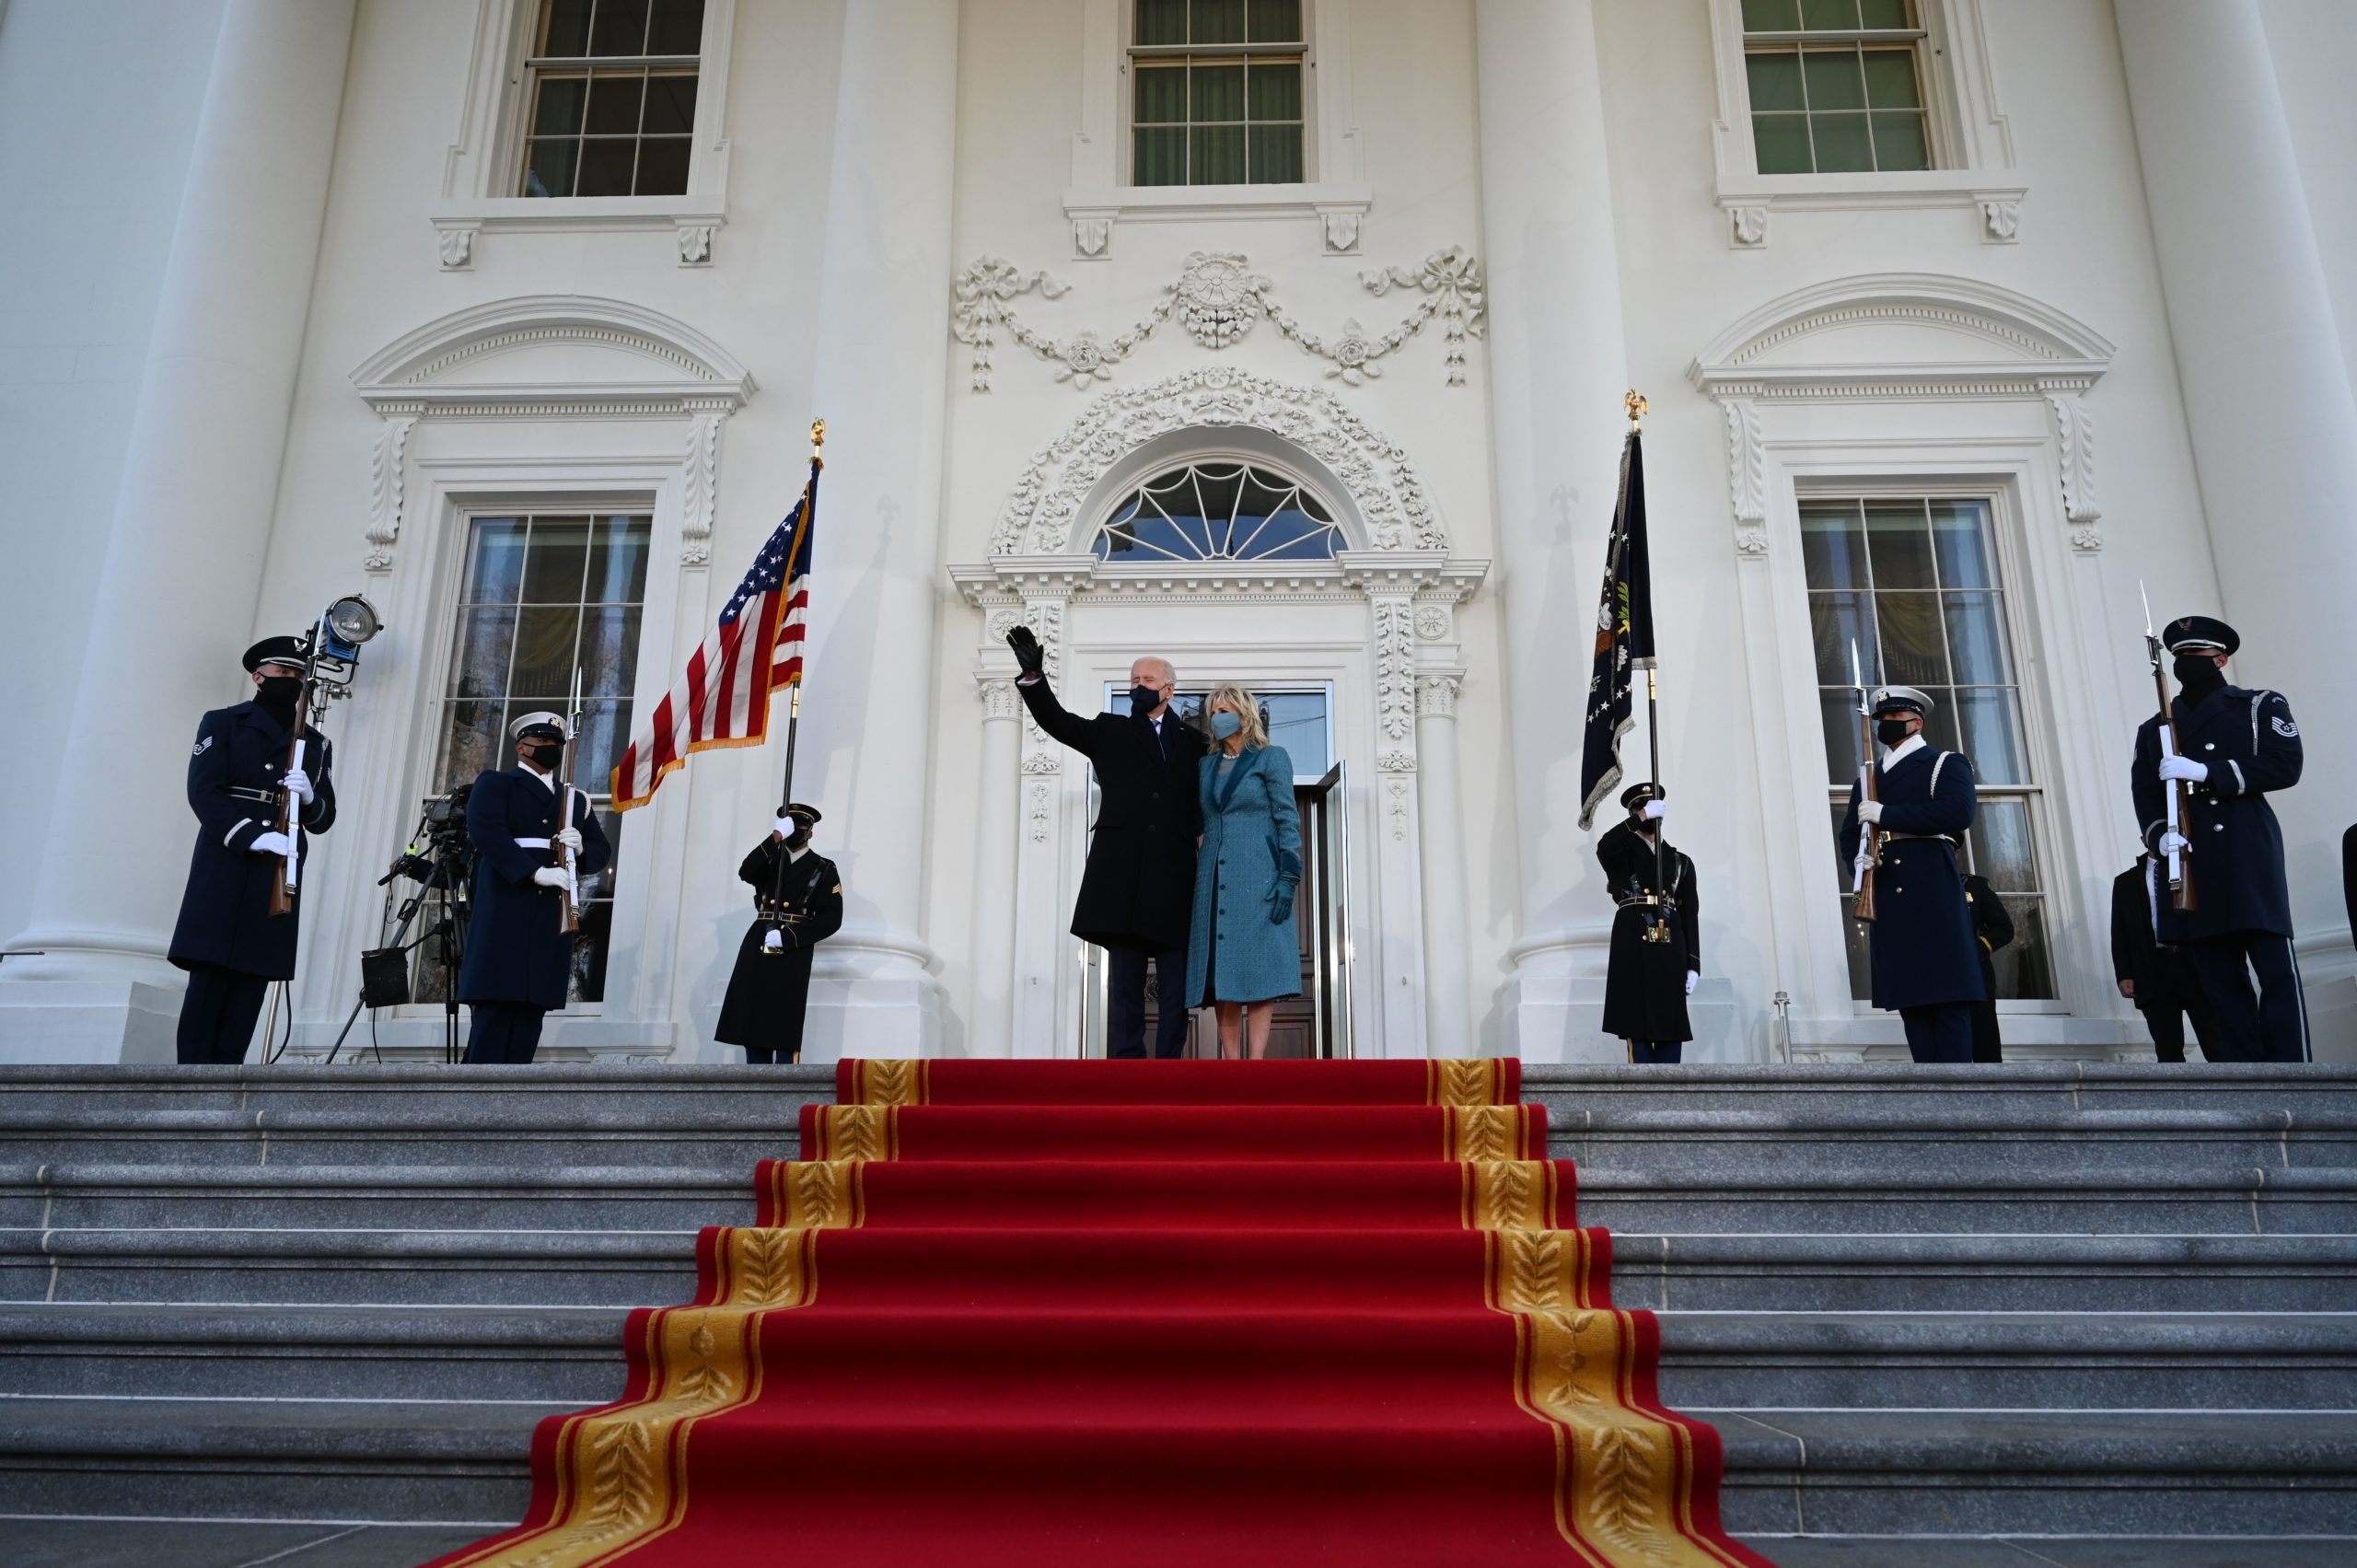 President Joe Biden and First Lady Jill Biden arrive at the White House on Wednesday. (Jim Watson/AFP via Getty Images)